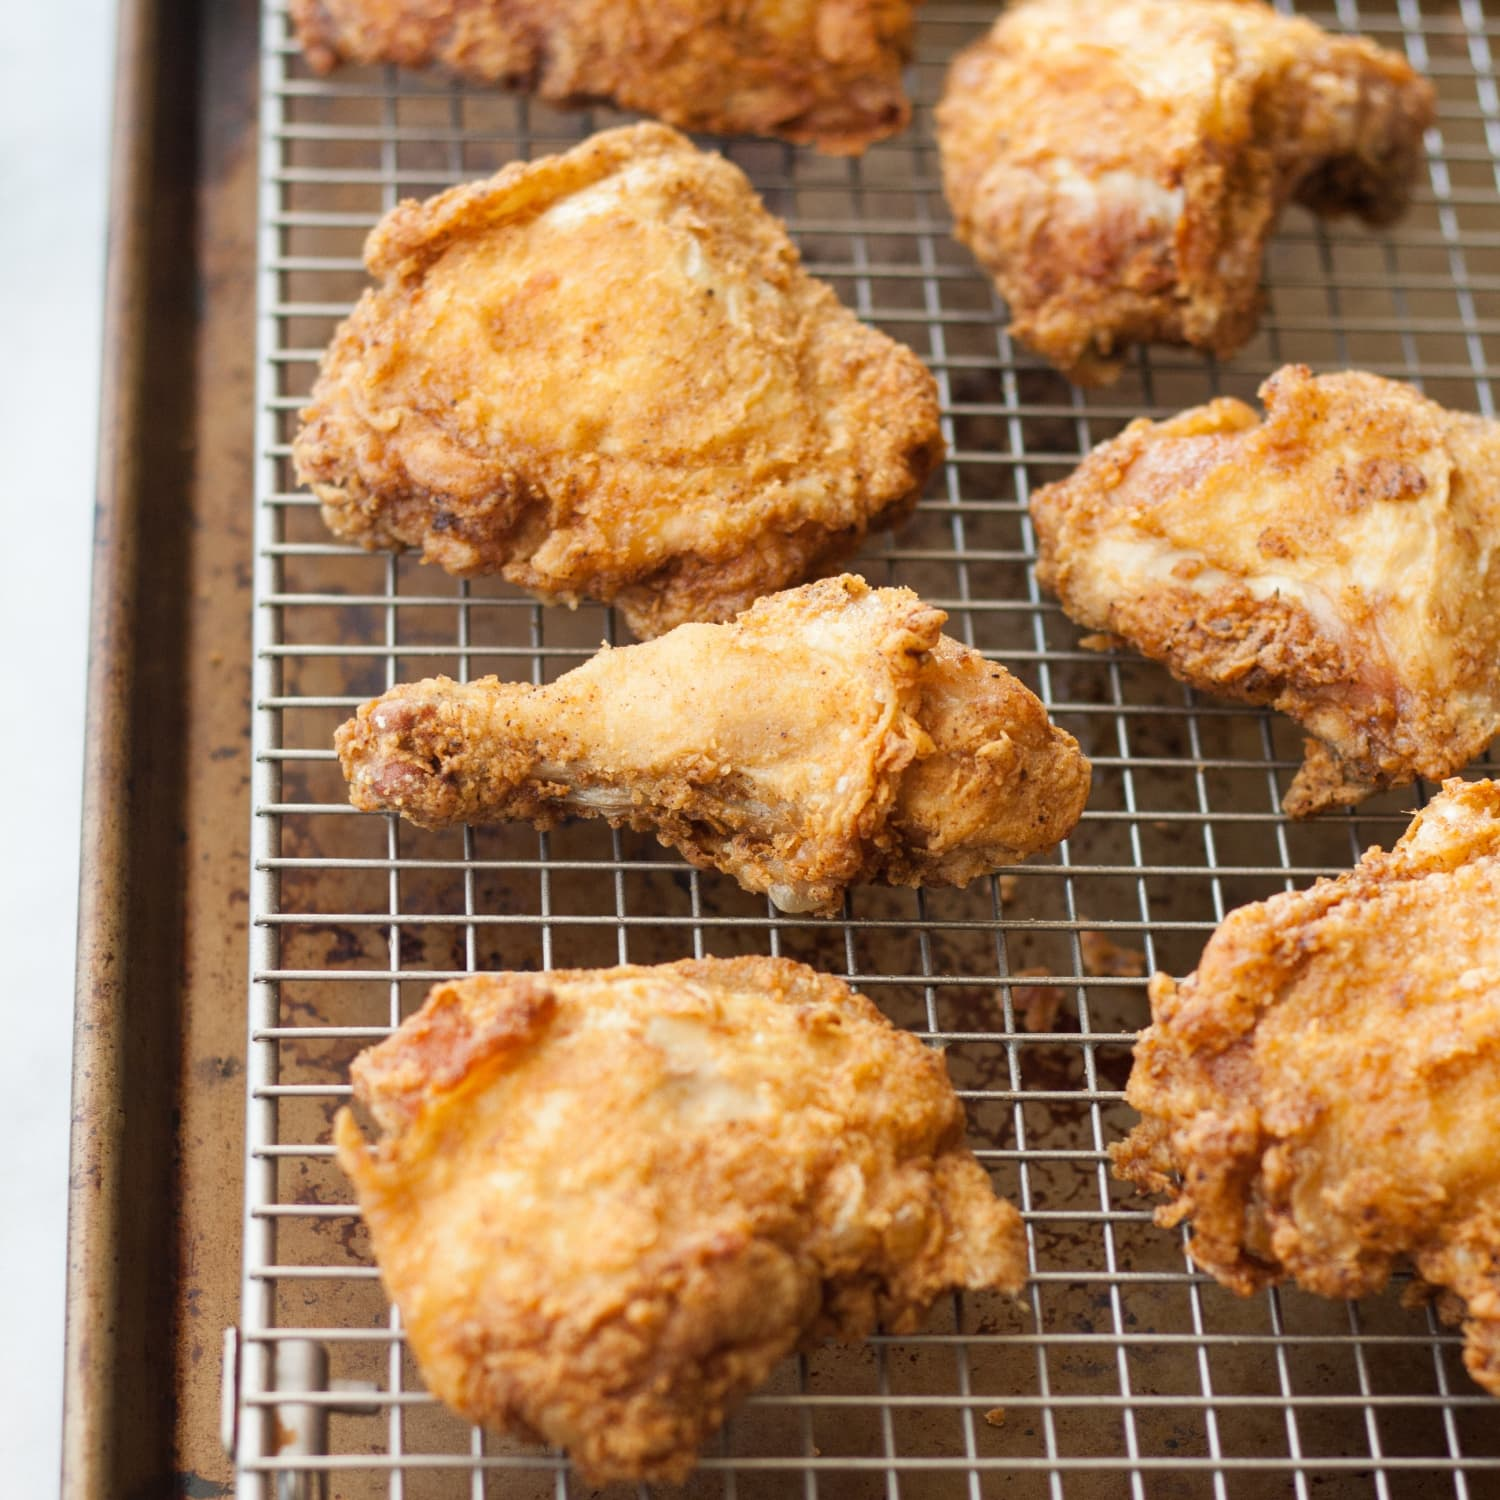 The Best Way to Keep Fried Foods Crispy | Kitchn